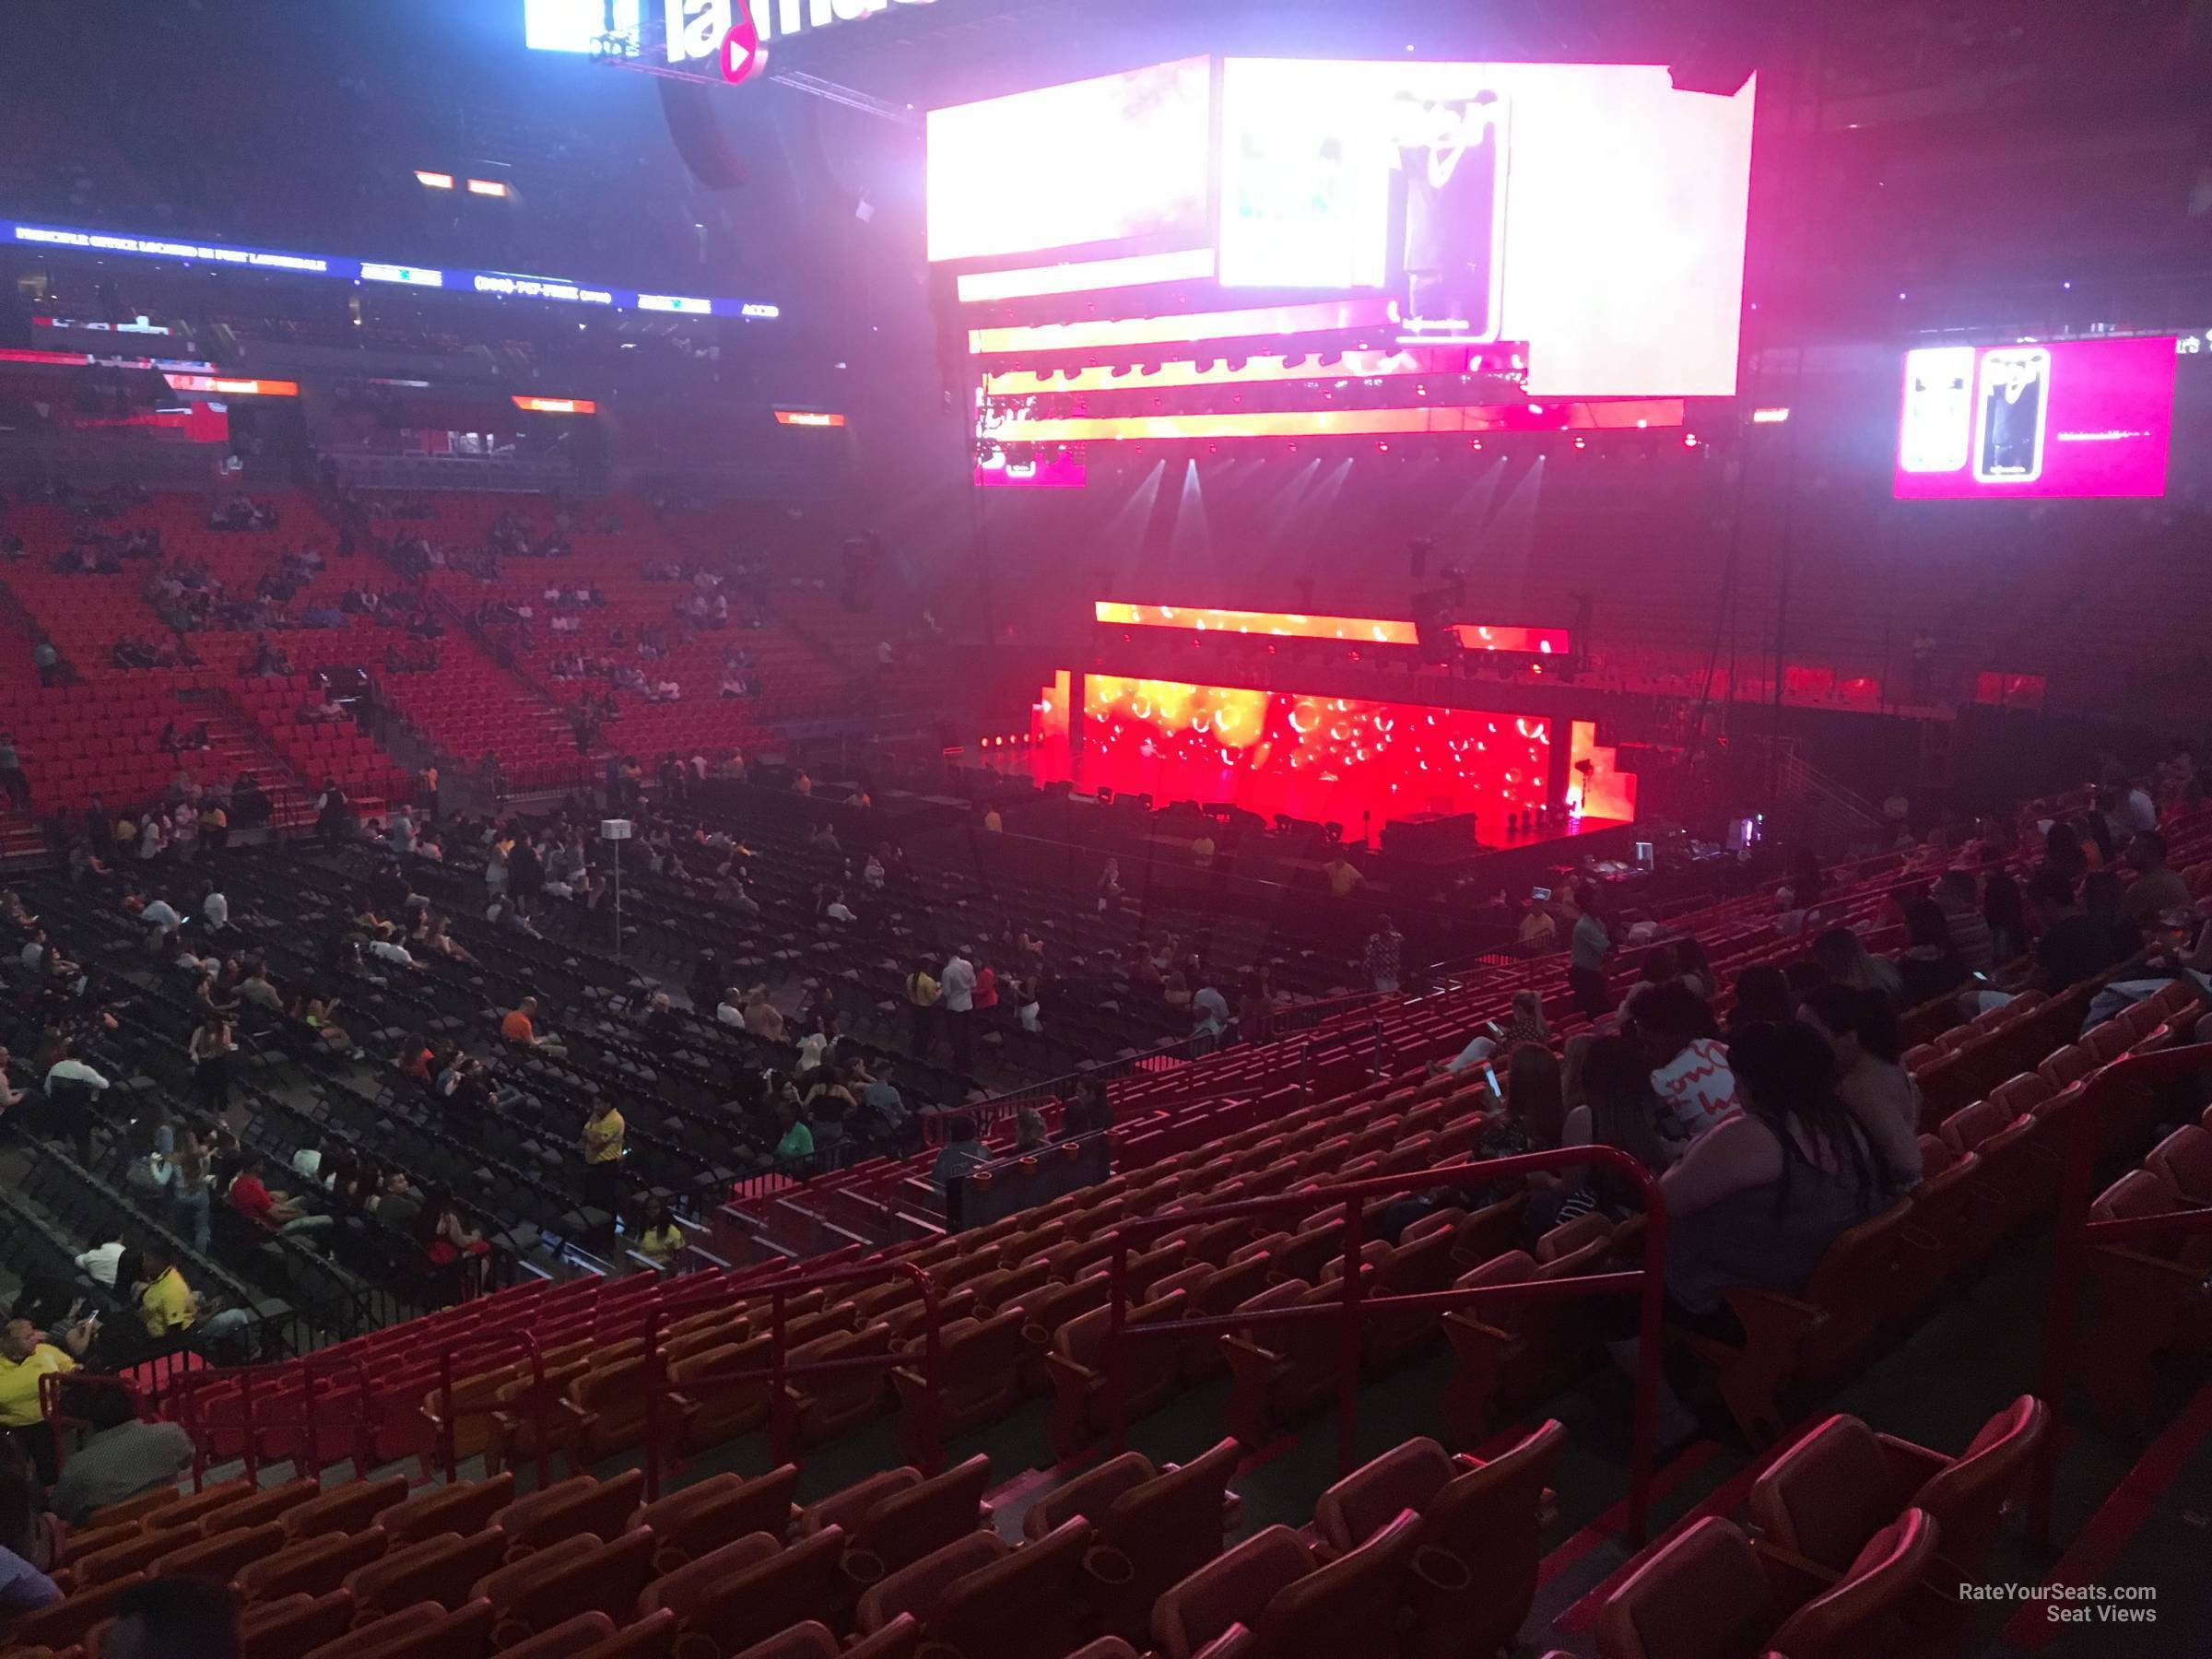 Americanairlines Arena Section 108 Concert Seating